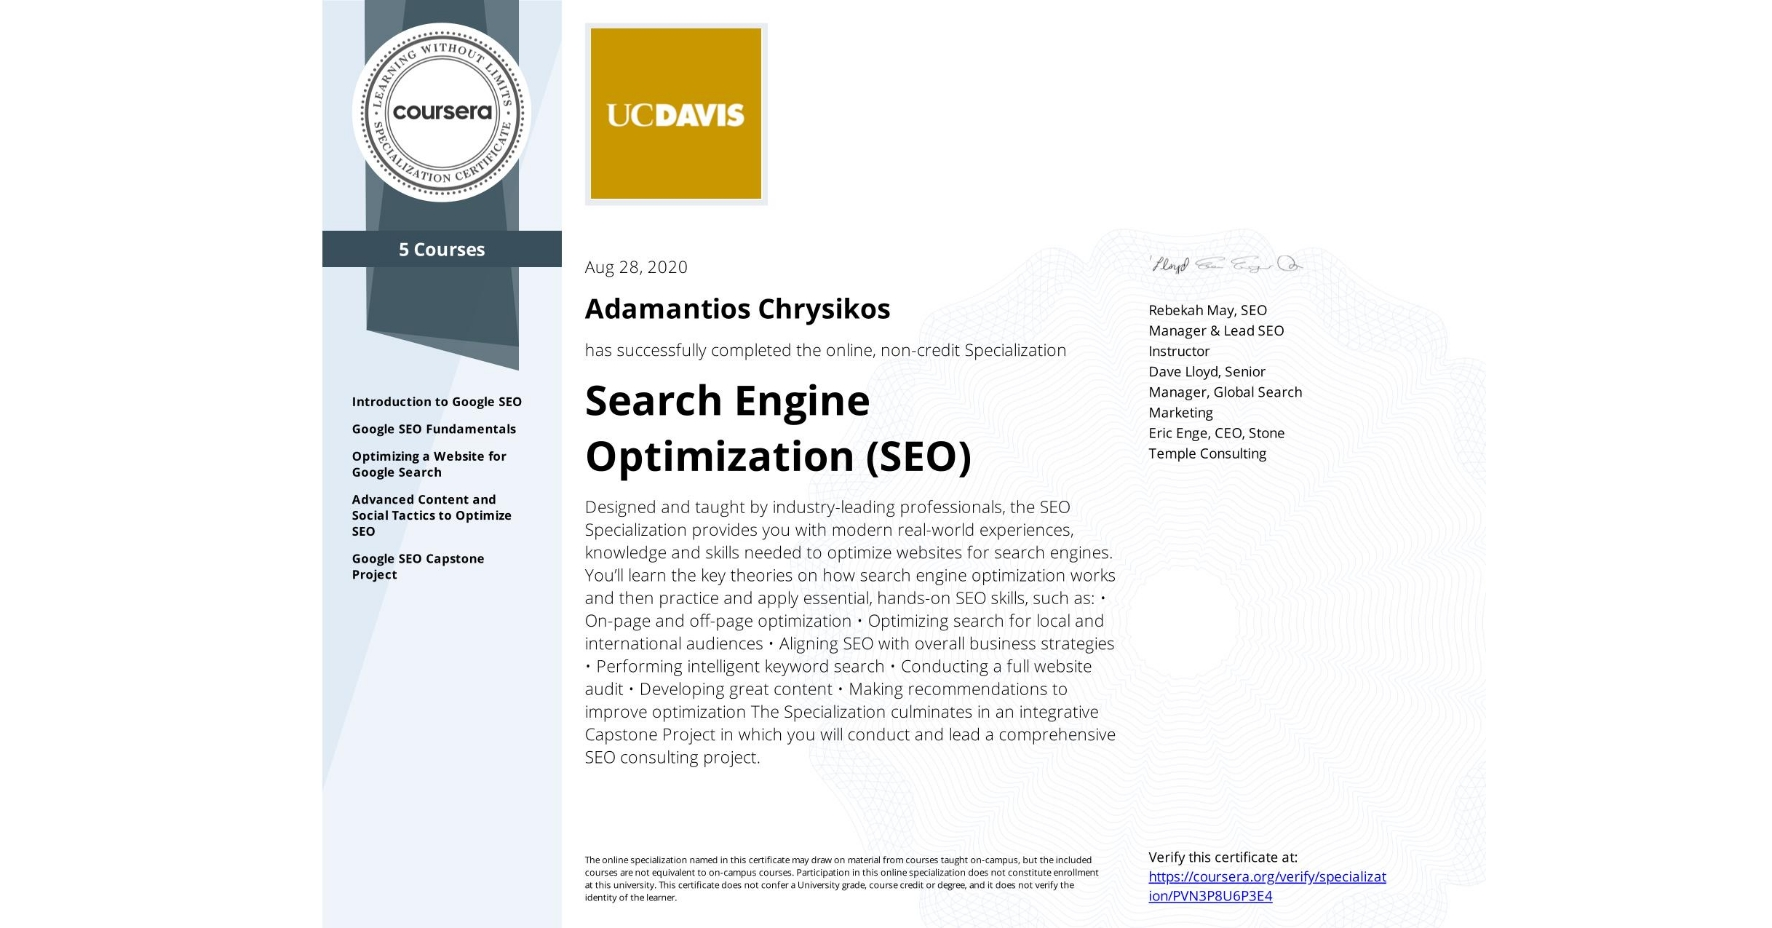 View certificate for Adamantios Chrysikos, Search Engine Optimization (SEO), offered through Coursera. Designed and taught by industry-leading professionals, the SEO Specialization provides you with modern real-world experiences, knowledge and skills needed to optimize websites for search engines.  You'll learn the key theories on how search engine optimization works and then practice and apply essential, hands-on SEO skills, such as:  • On-page and off-page optimization • Optimizing search for local and international audiences • Aligning SEO with overall business strategies • Performing intelligent keyword search • Conducting a full website audit • Developing great content • Making recommendations to improve optimization  The Specialization culminates in an integrative Capstone Project in which you will conduct and lead a comprehensive SEO consulting project.